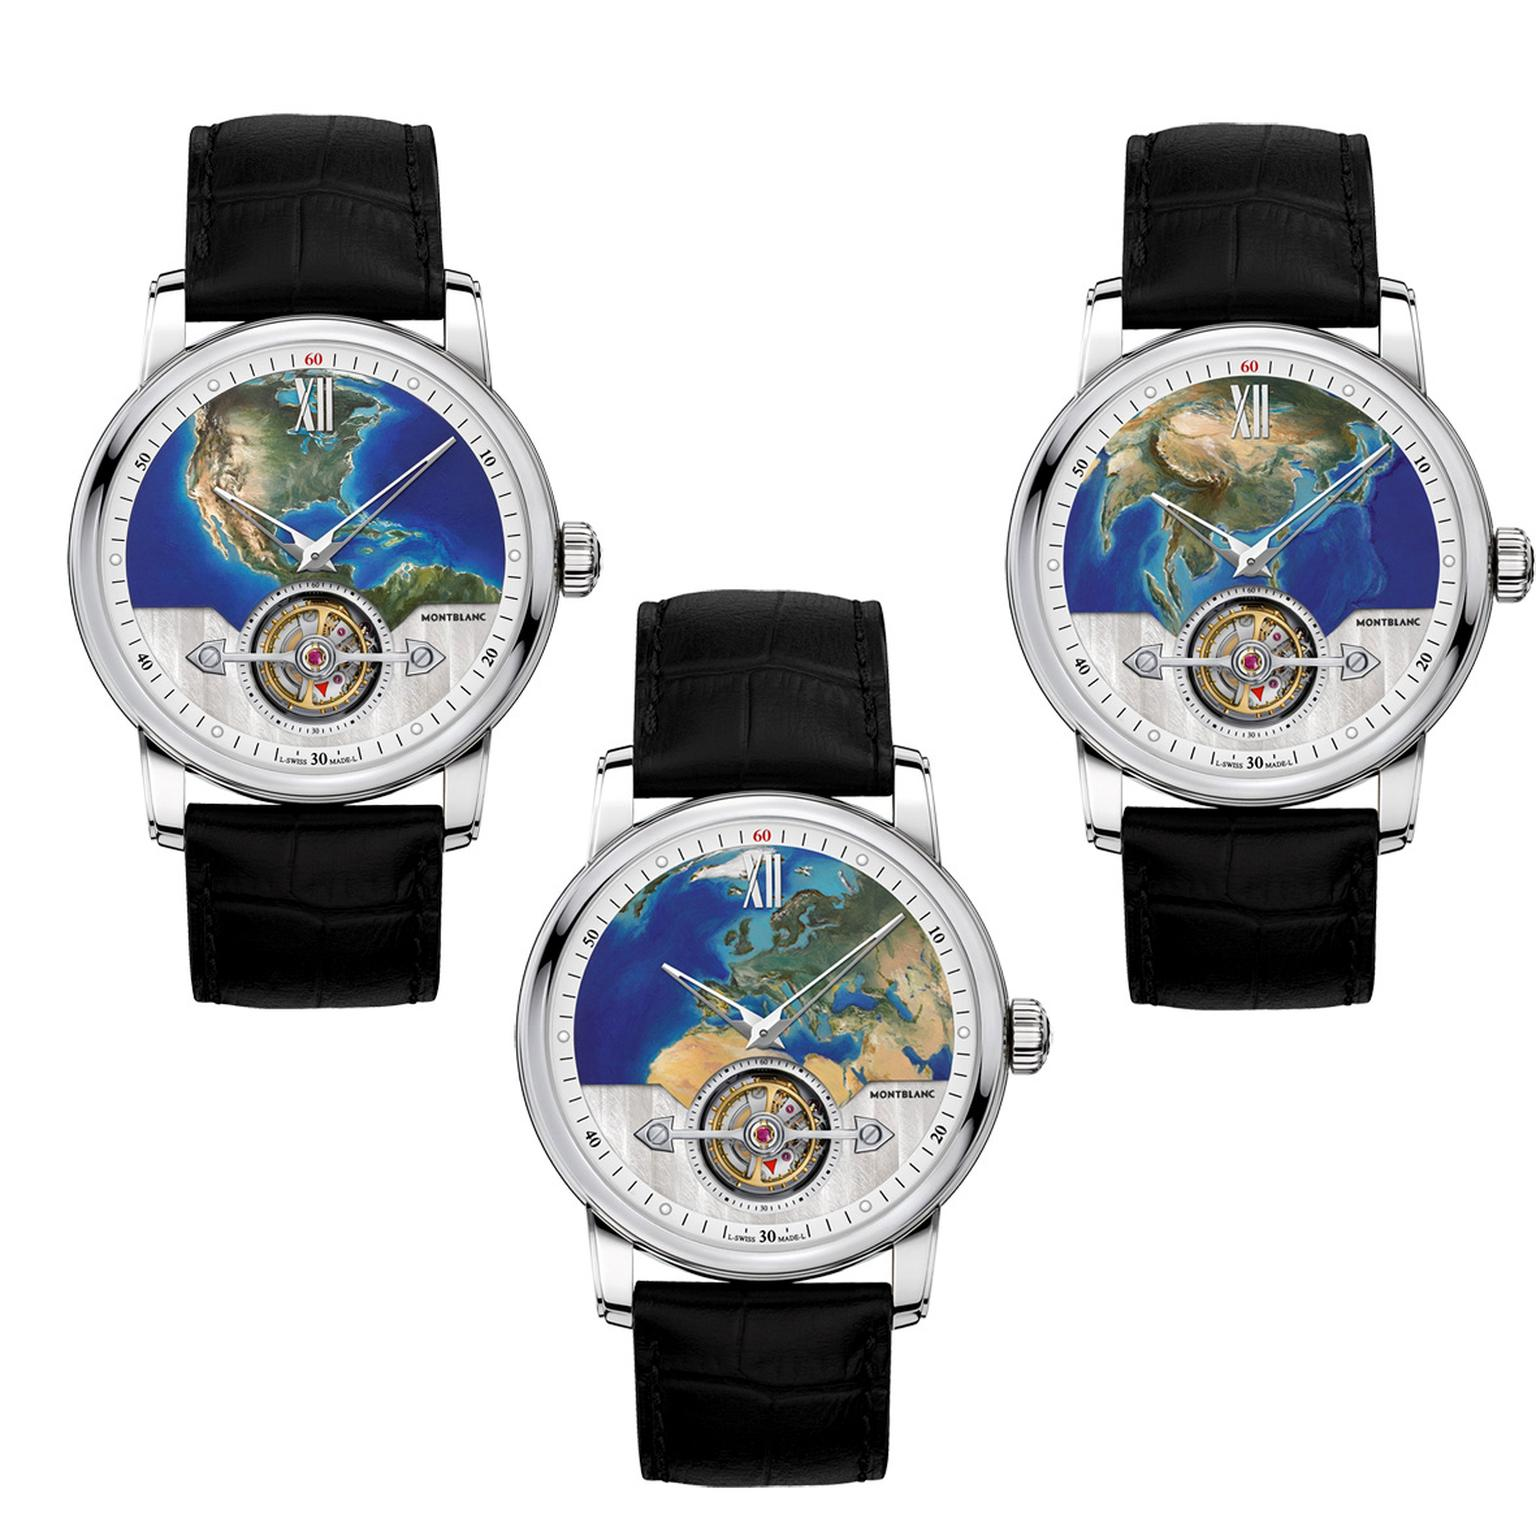 Montblanc 4810 ExoTourbillon watch trio